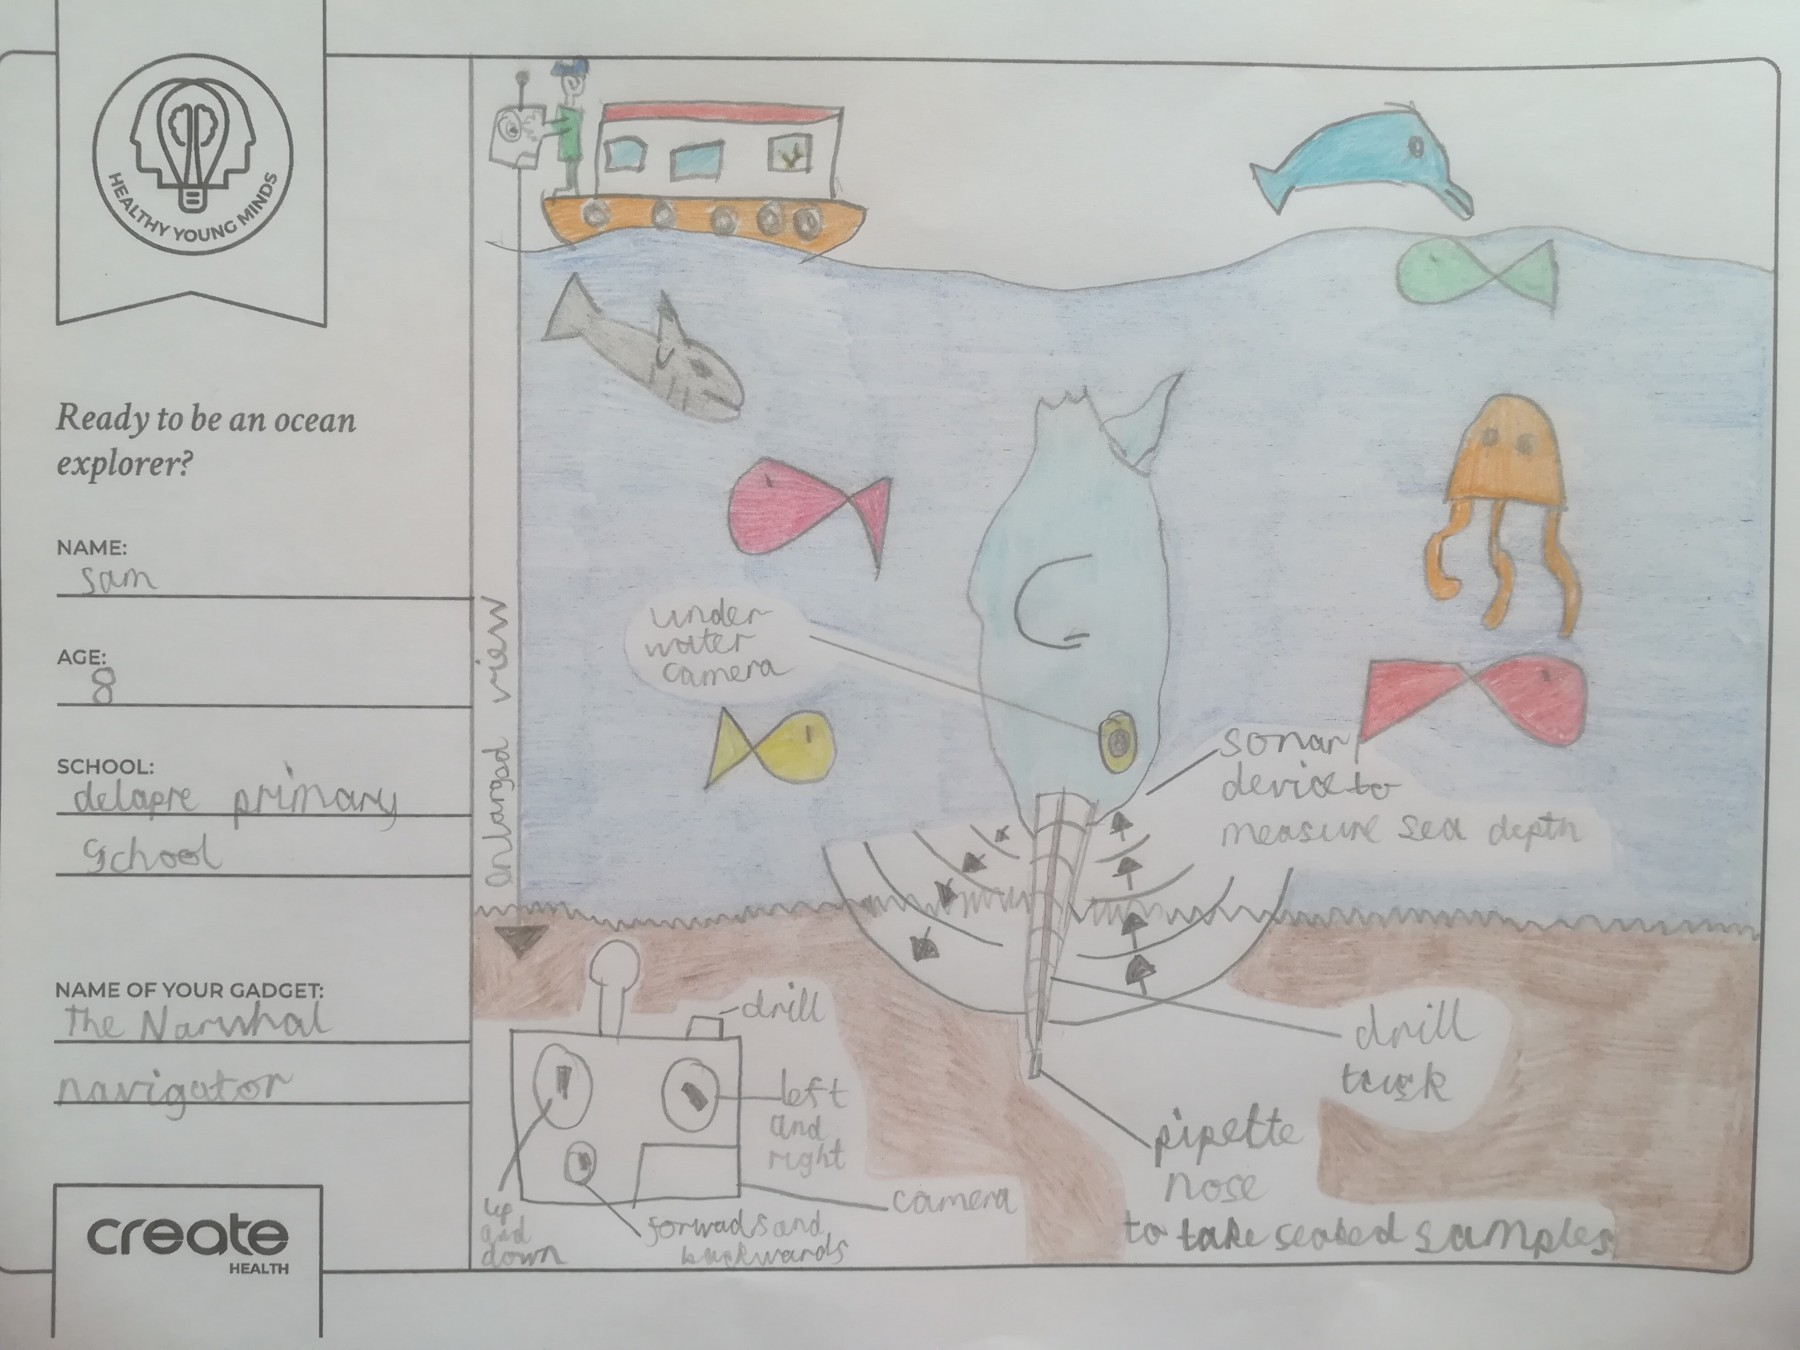 Healthy Young Minds art entrant - Sam - age 8